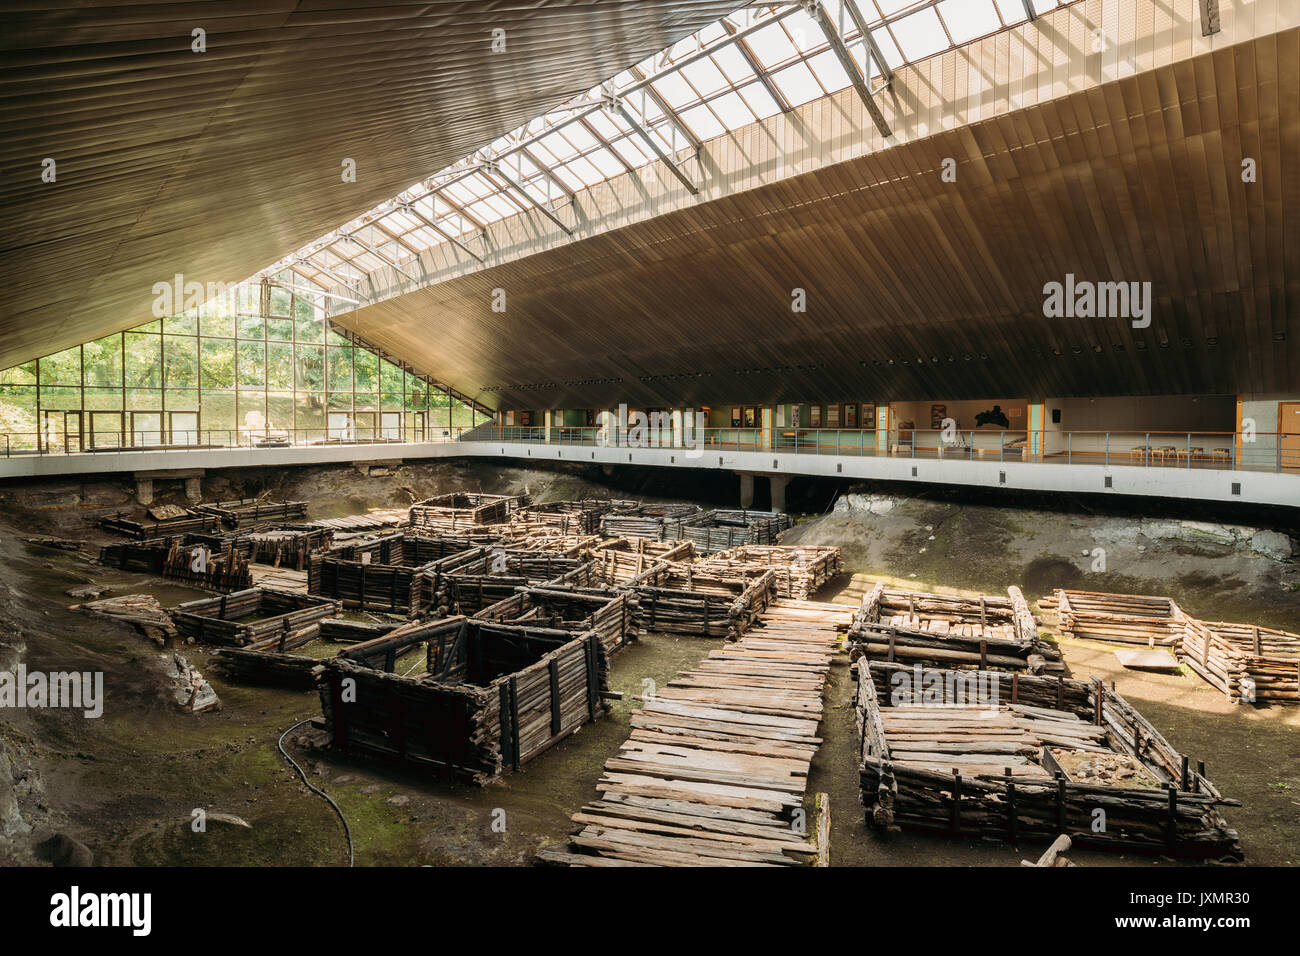 Brest, Belarus. Archaeological Monument Of Authentic East Slavic Wooden Town Of 13th Century In Berestye Archeological Museum. - Stock Image